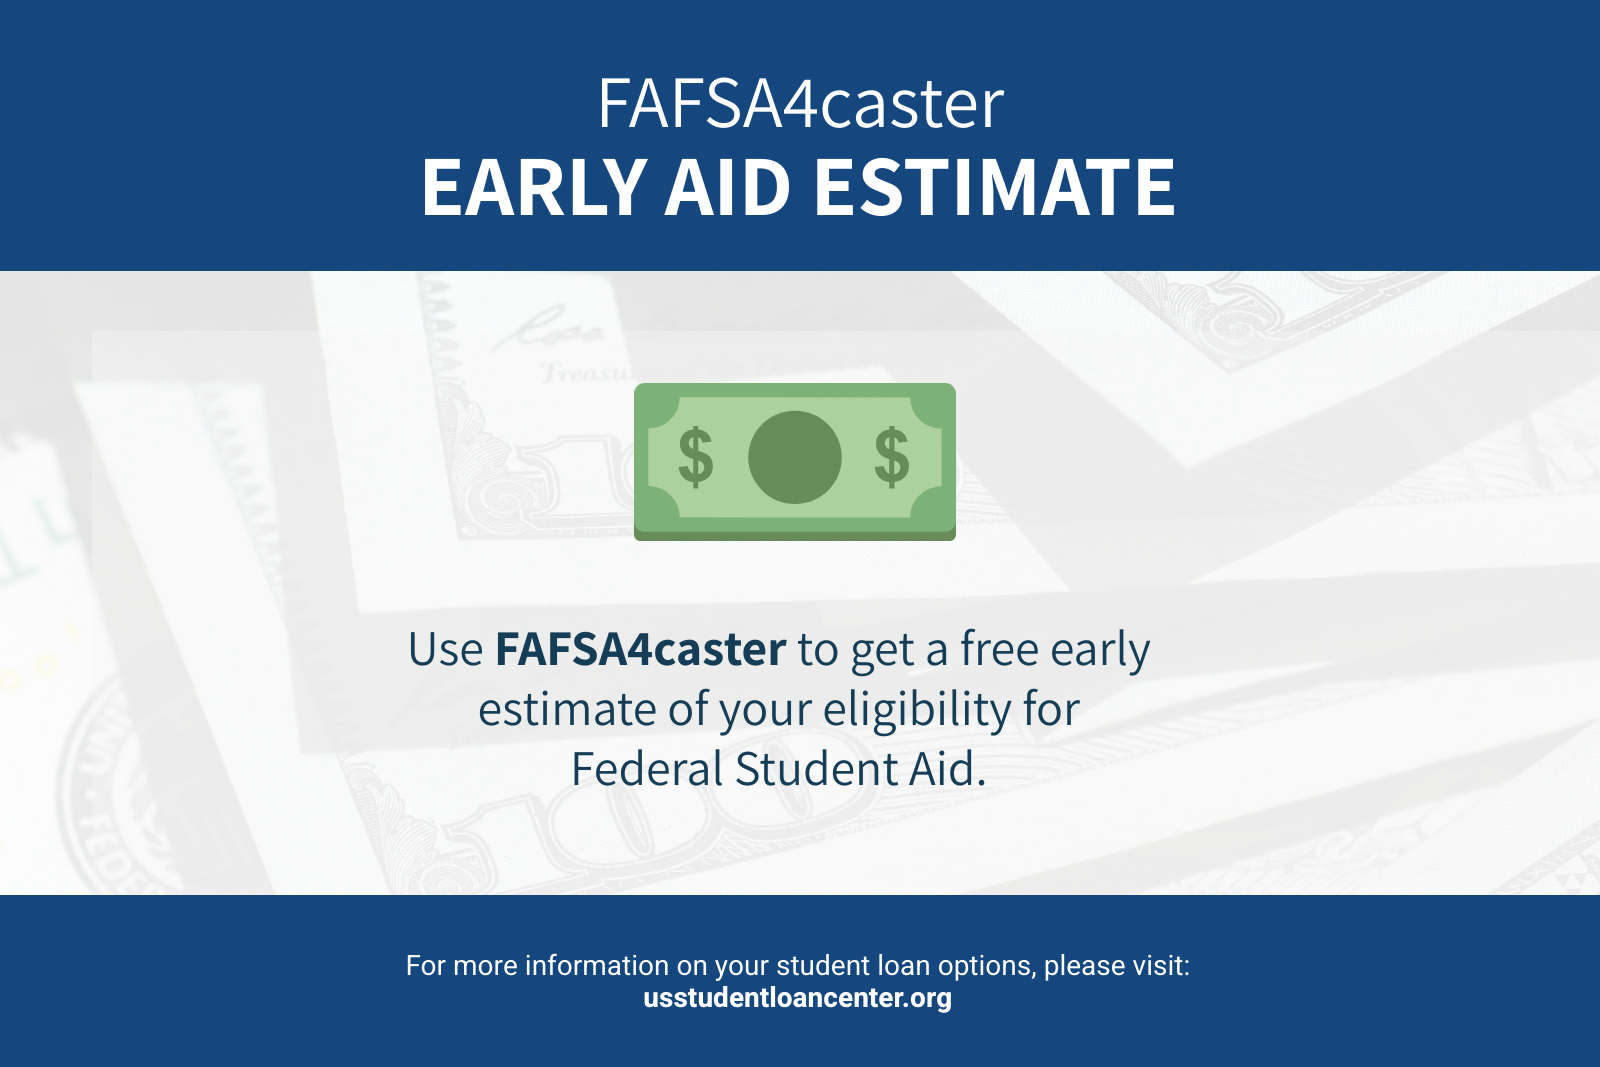 What is the FAFSA4Caster?